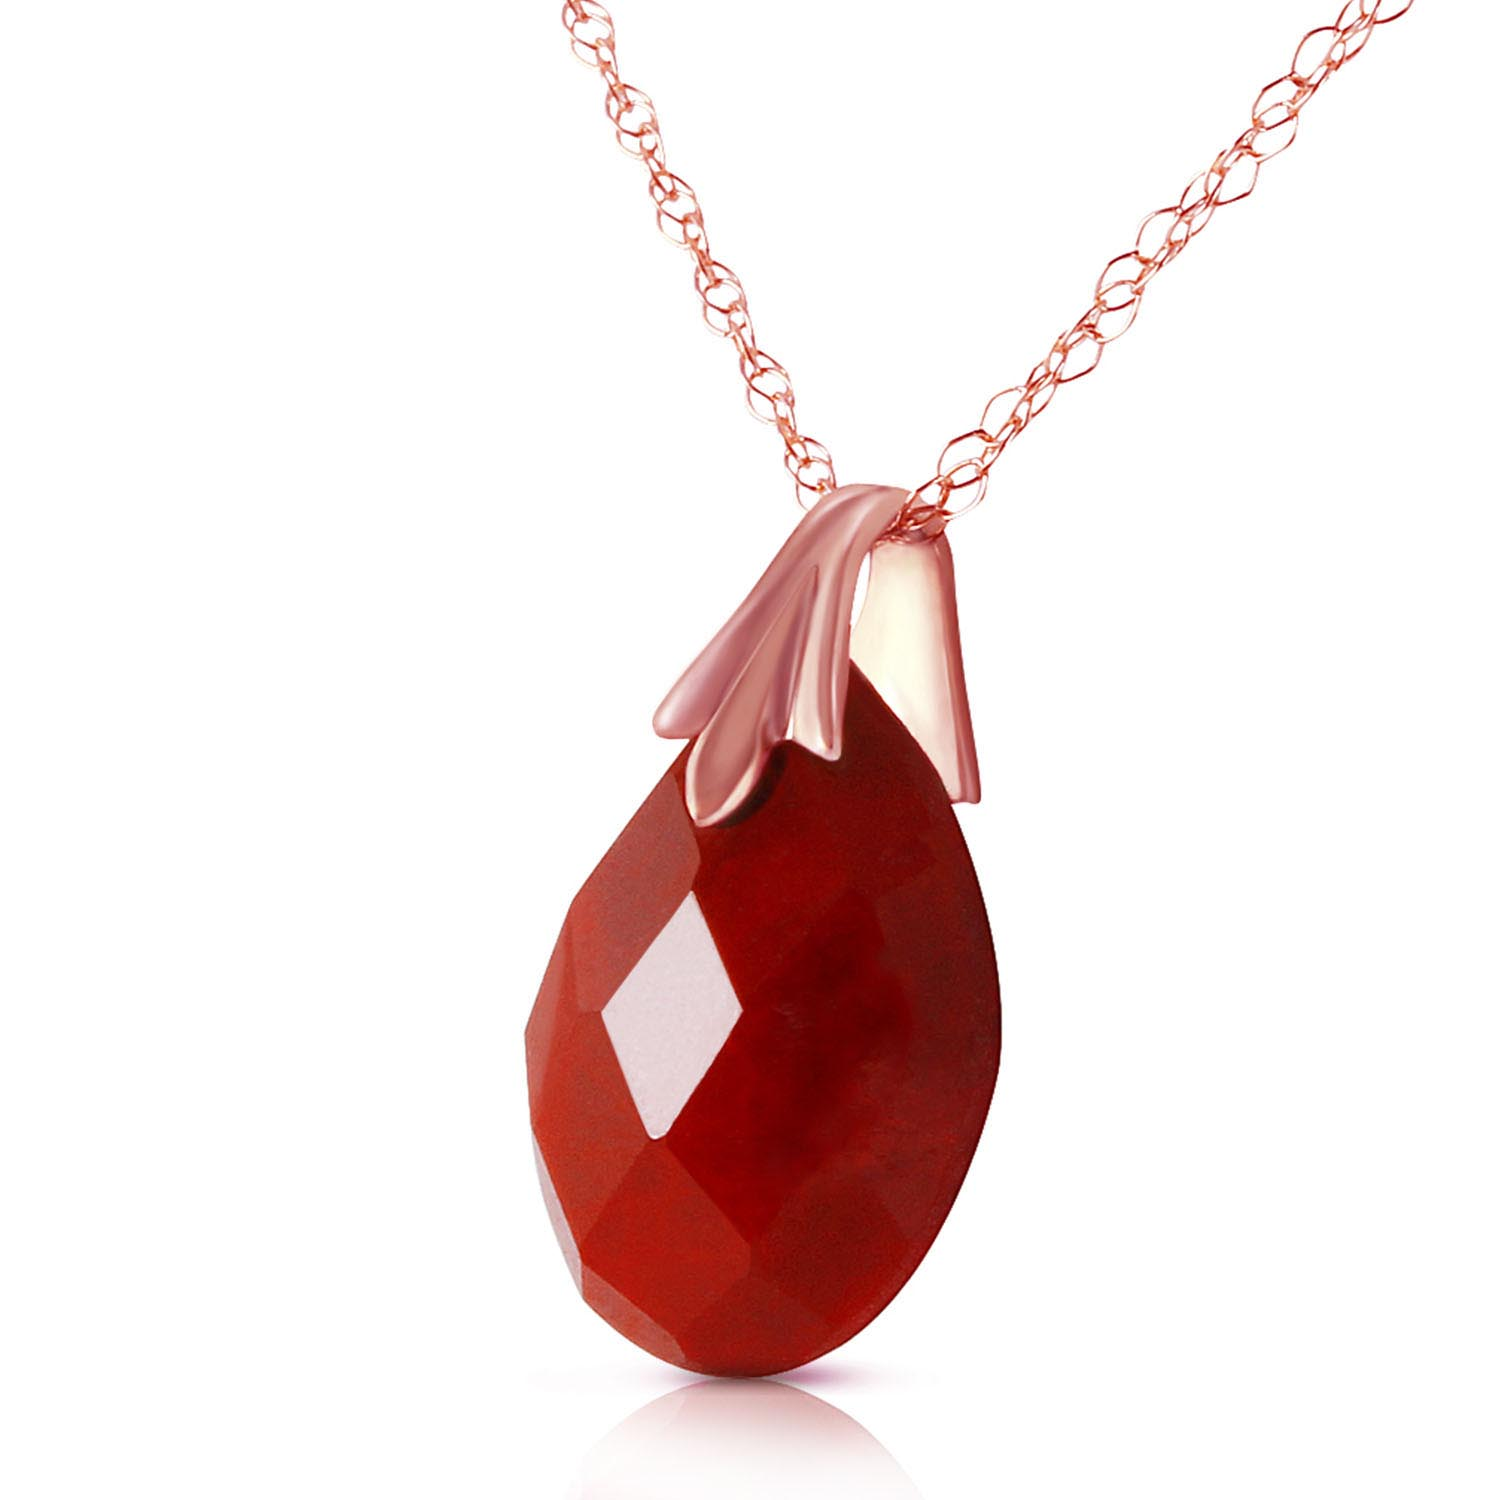 Ruby Briolette Pendant Necklace 4.0ct in 9ct Rose Gold